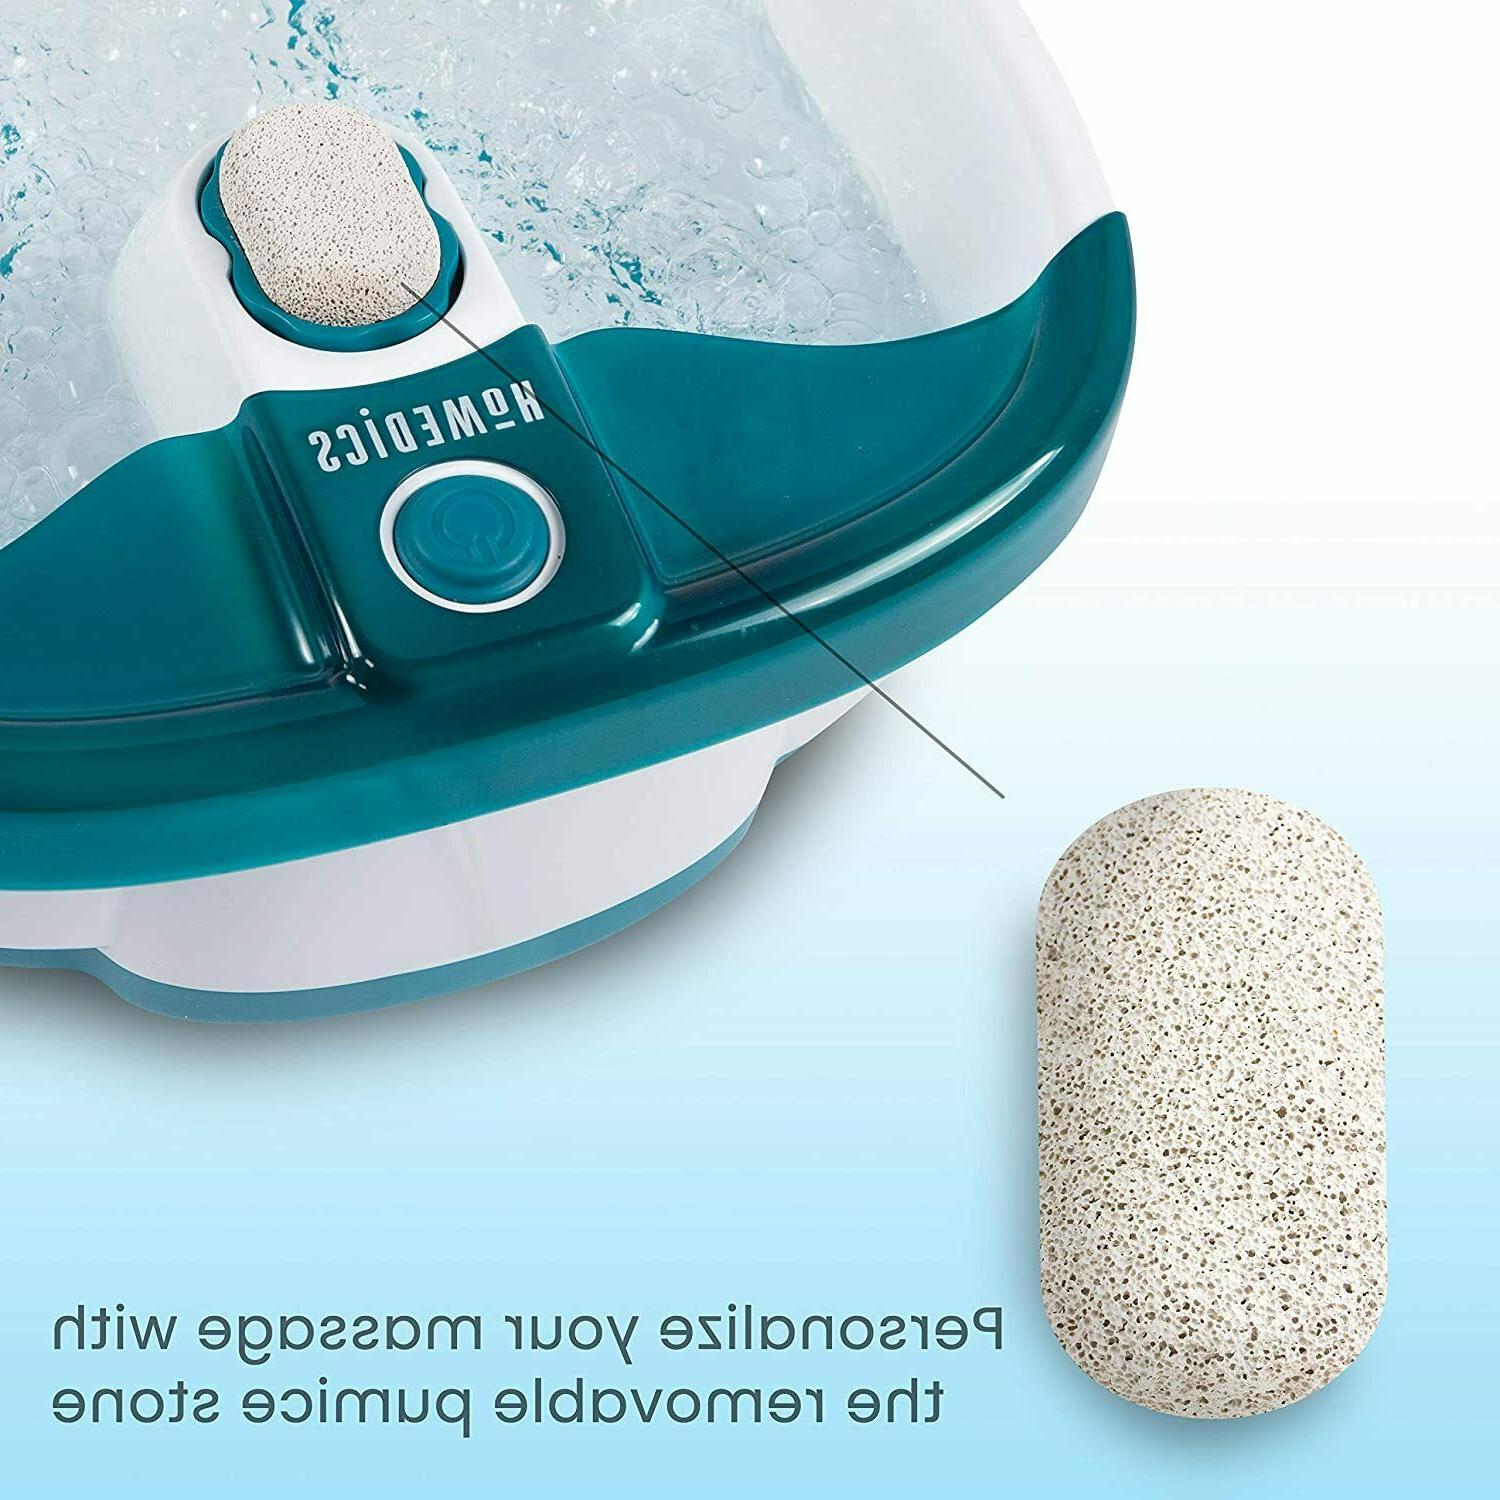 Foot Spa Feet Bath Jets Massager Toe-Touch Control Bubbles